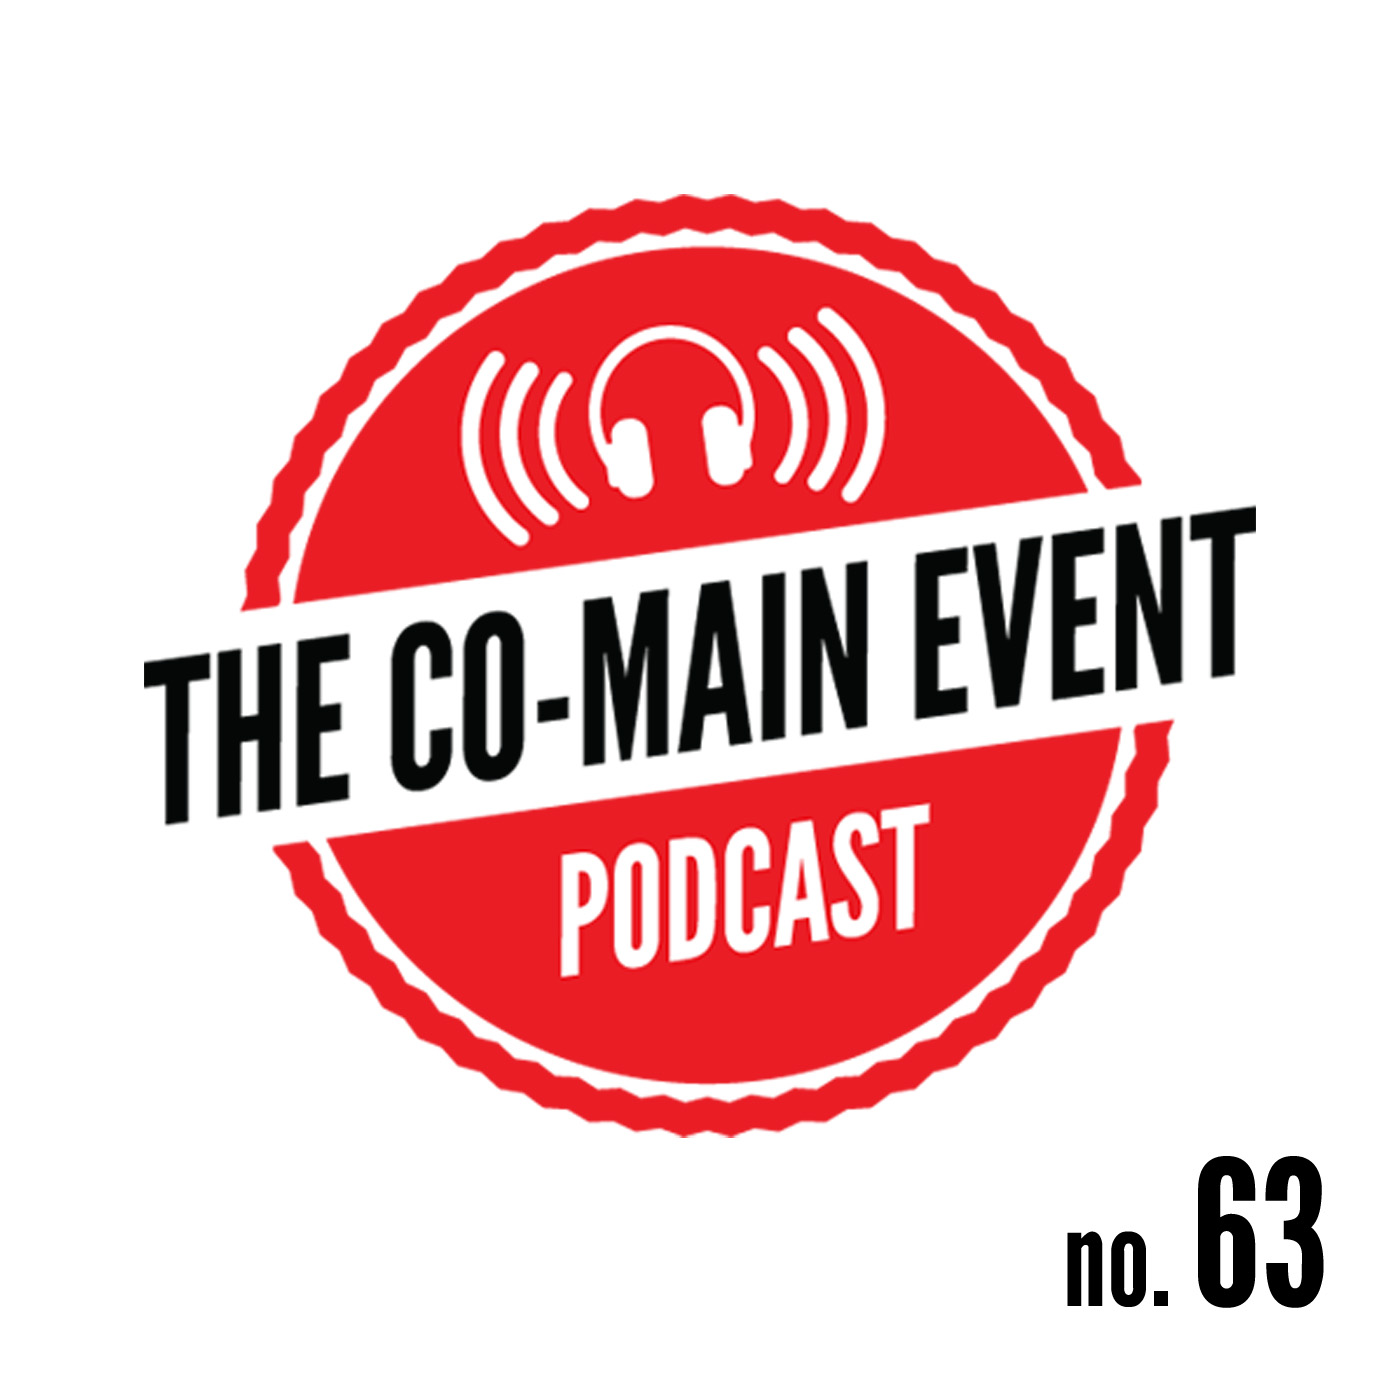 Co-Main Event Podcast Episode 63 (8/6/13)